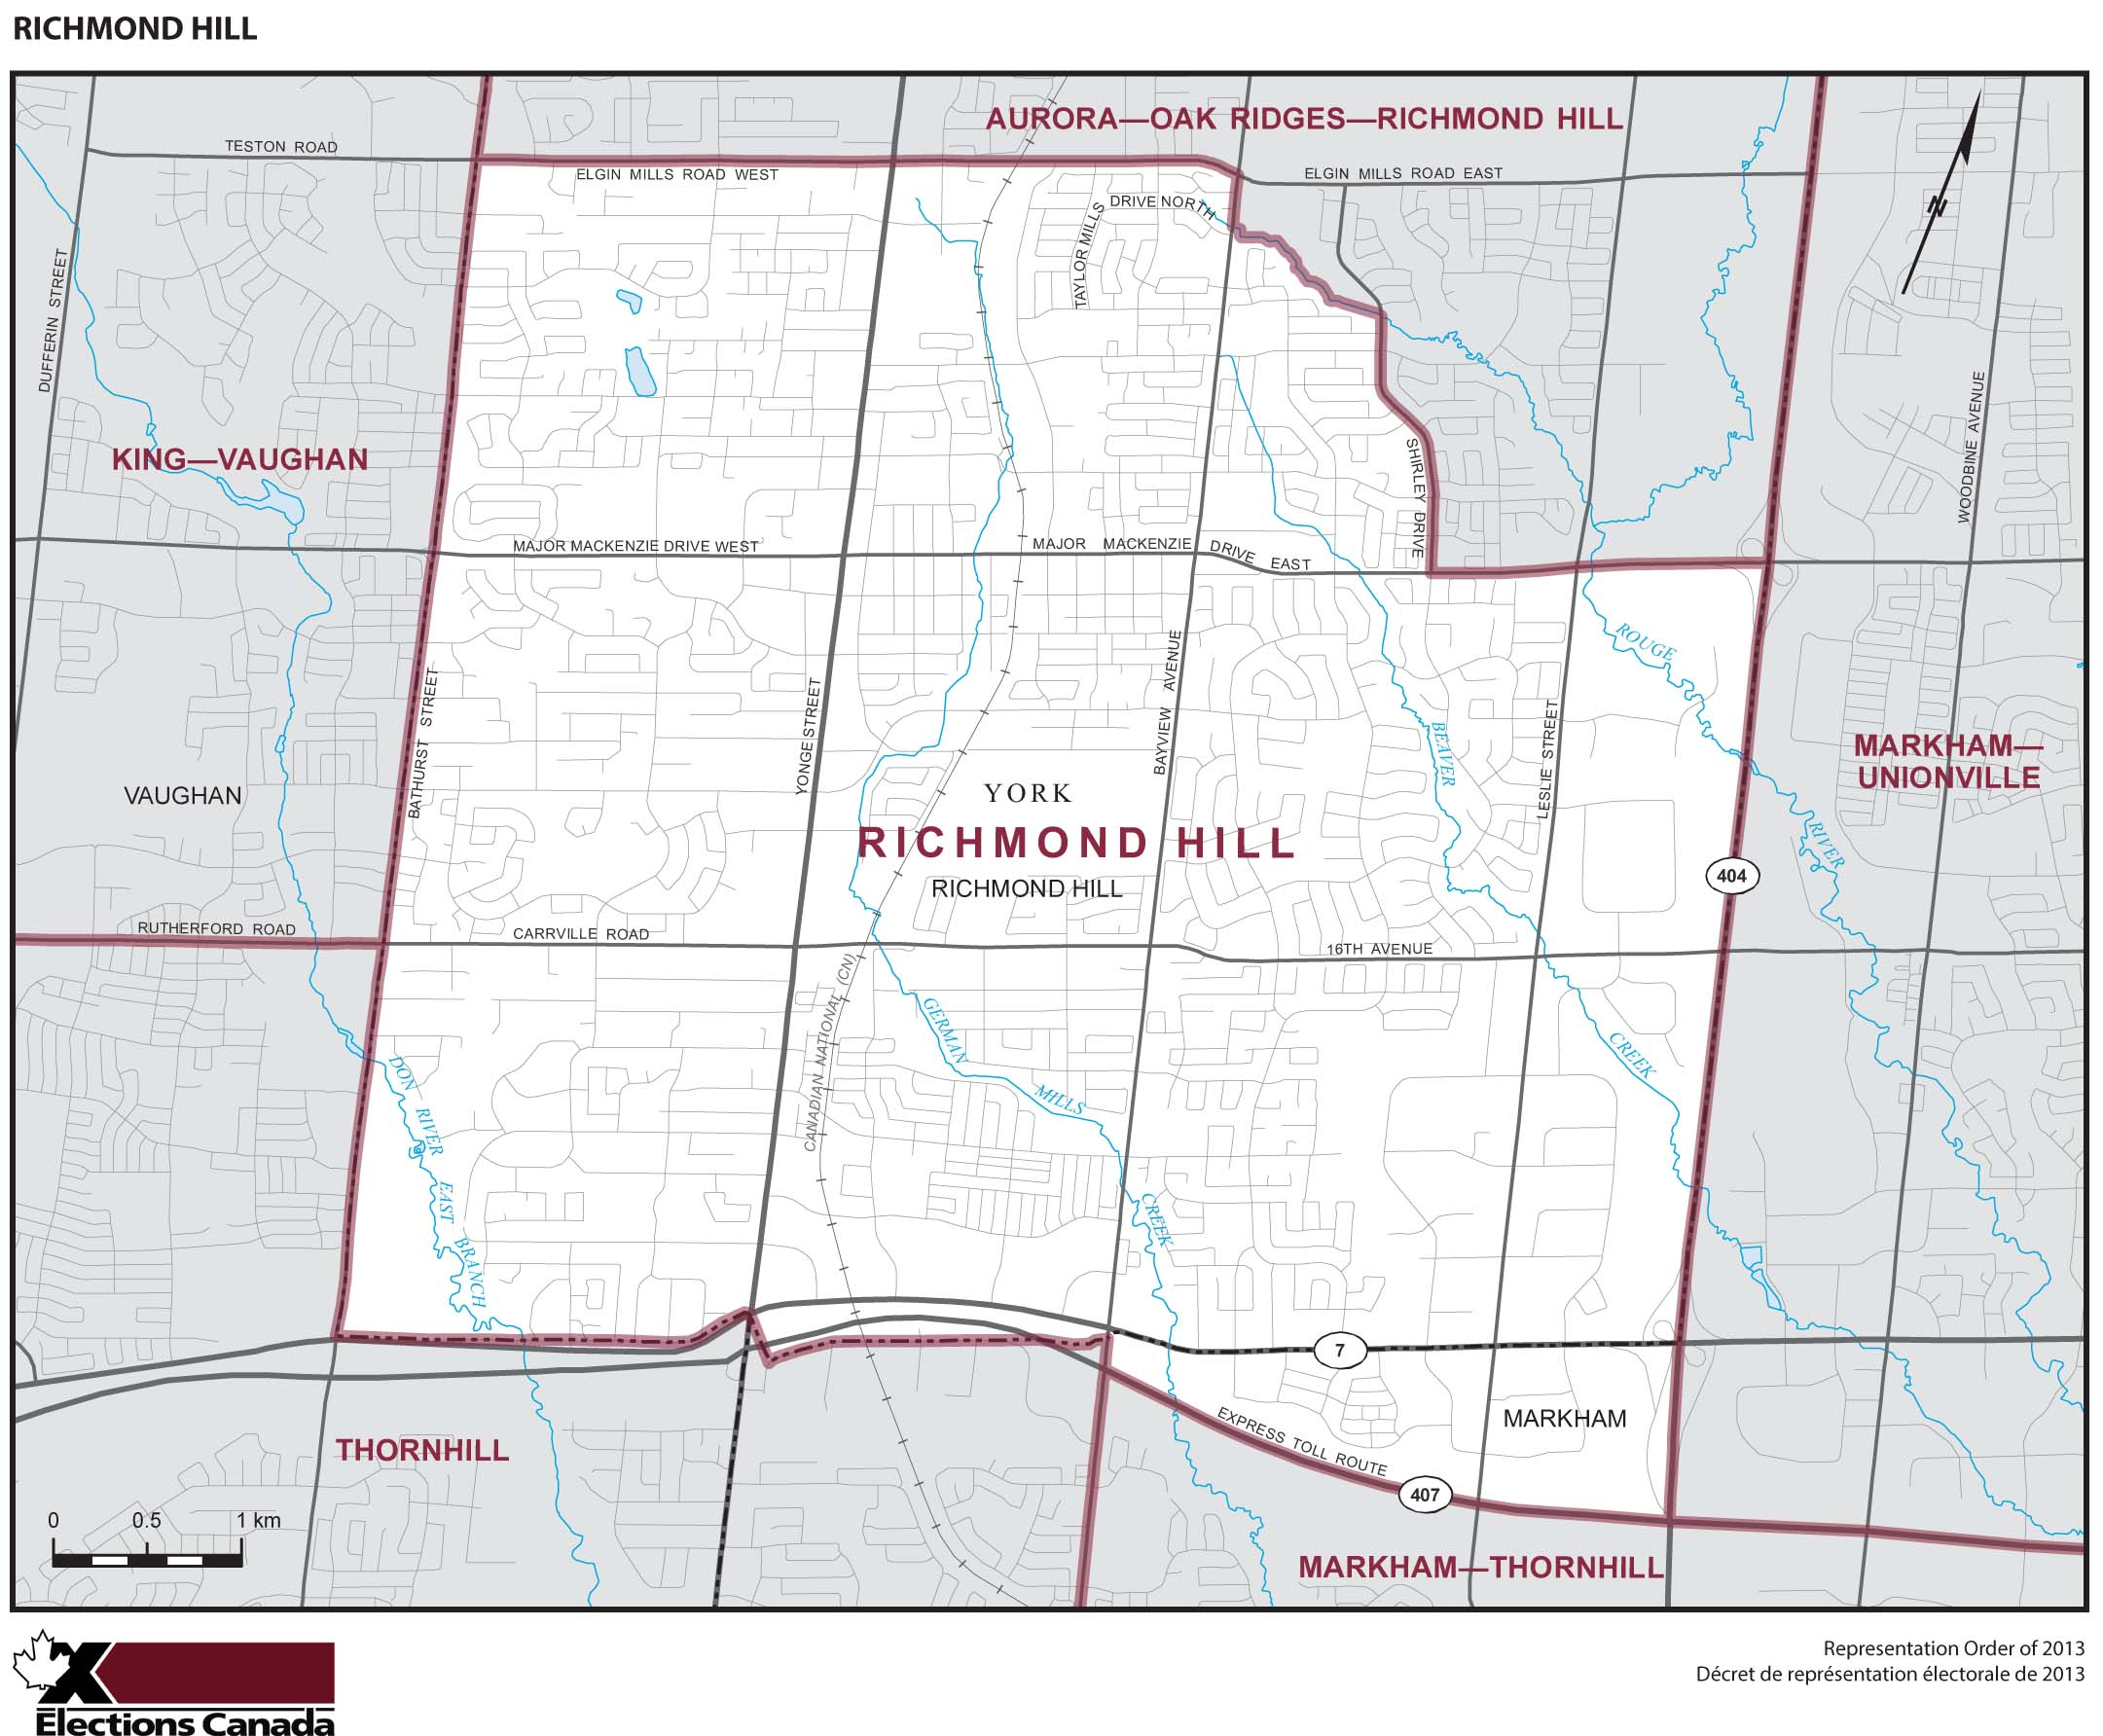 Map: Richmond Hill, Federal electoral district, 2013 Representation Order (in white), Ontario